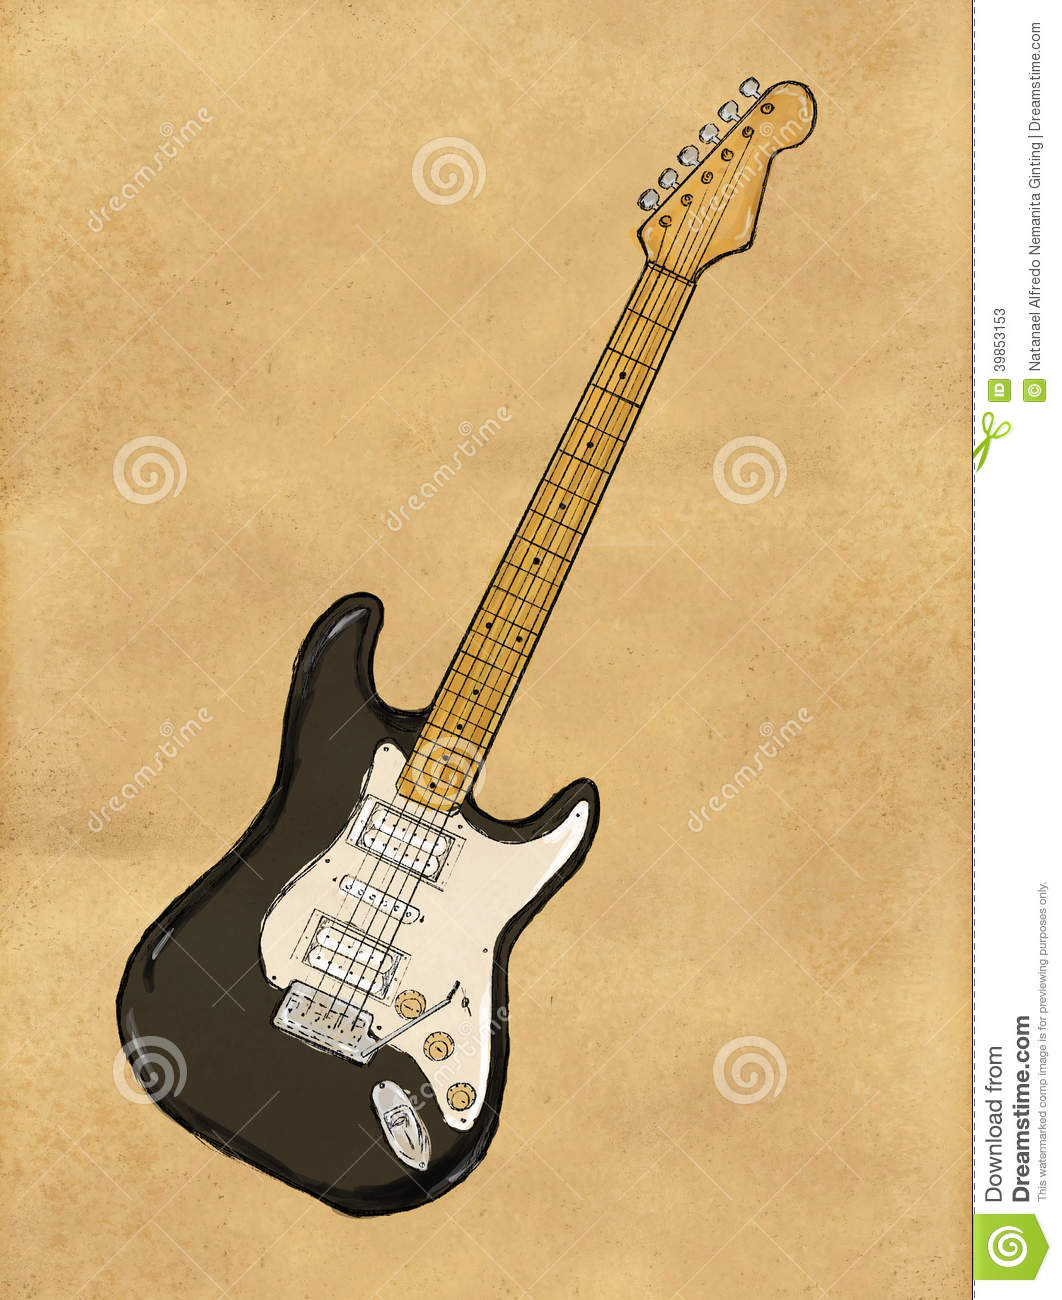 essay electric guitar Thesis statement: guitars have changed drastically over the course of time, and it started out with the early types of acoustic guitars to the.